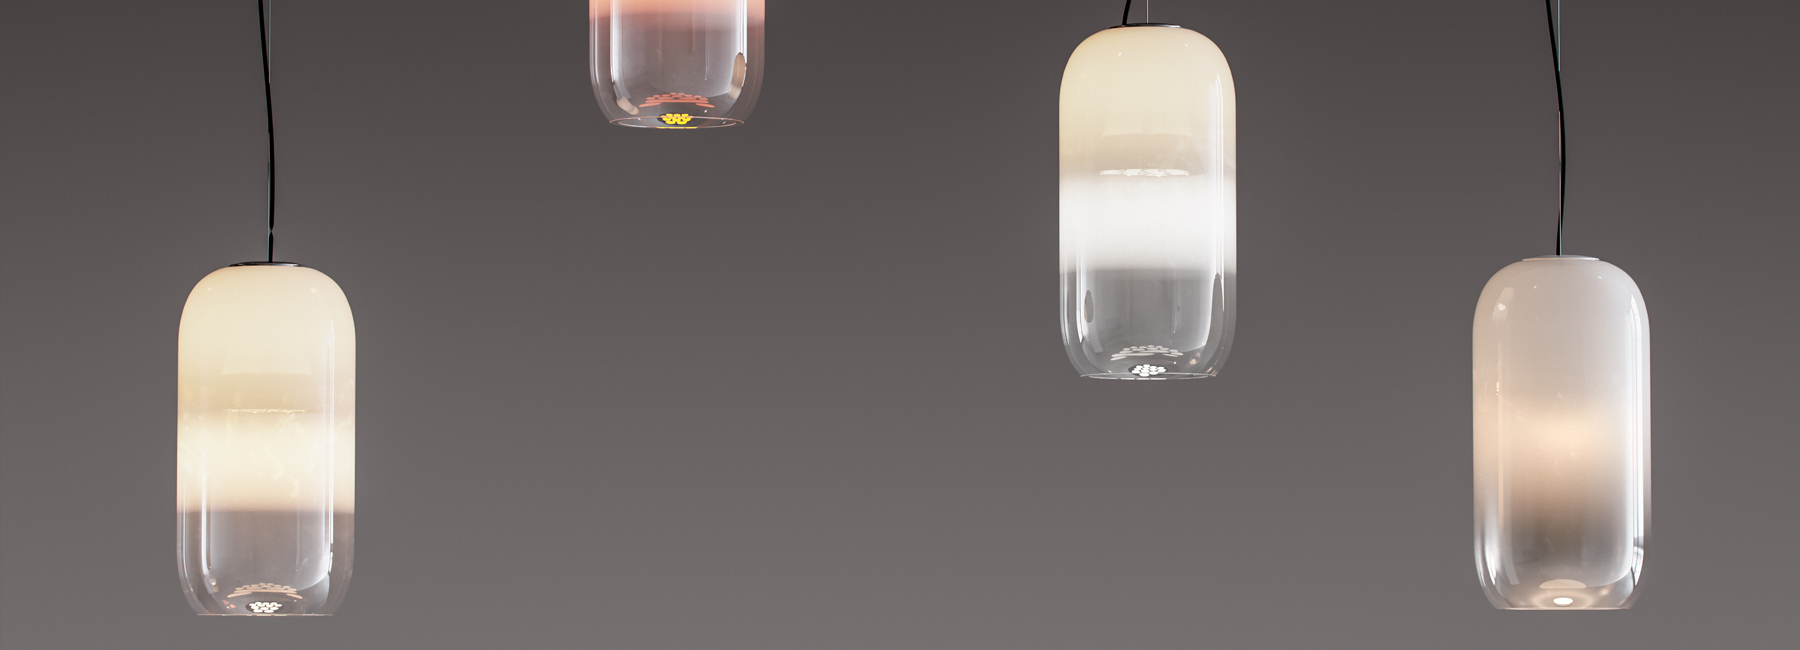 Lampe Artemide Bjarke Ingel S Big And Artemide Gople Lamp Nourishes The Growth Of